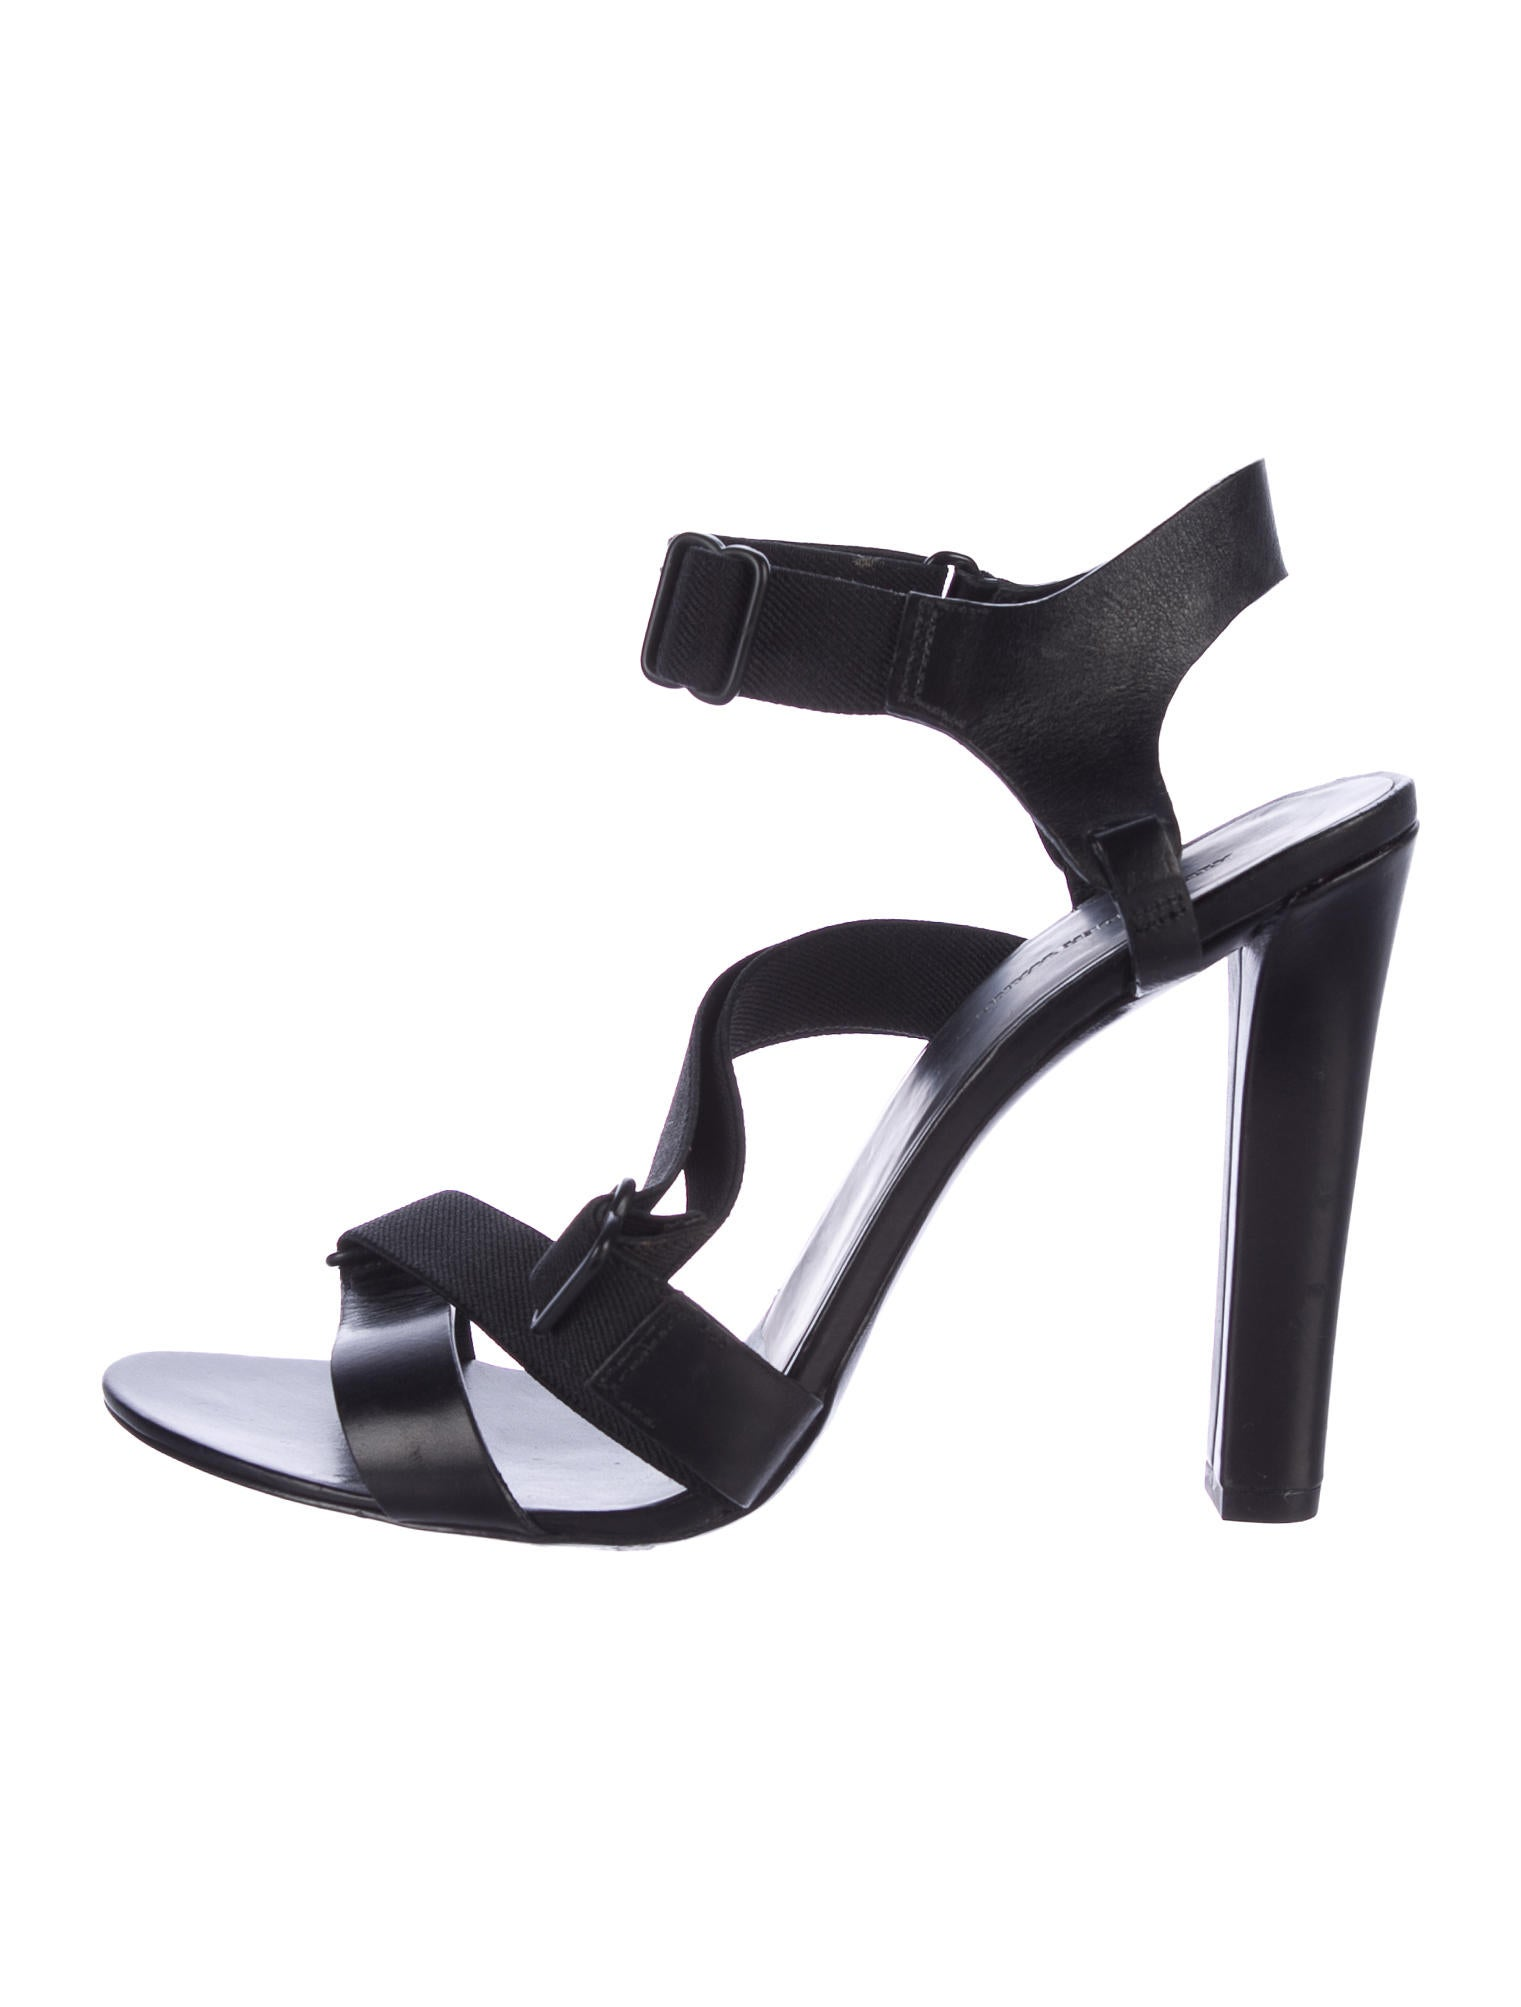 Alexander Wang Multistrap Patent Leather Sandals cheap sale supply clearance with mastercard low shipping fee cheap get to buy 4IlDg